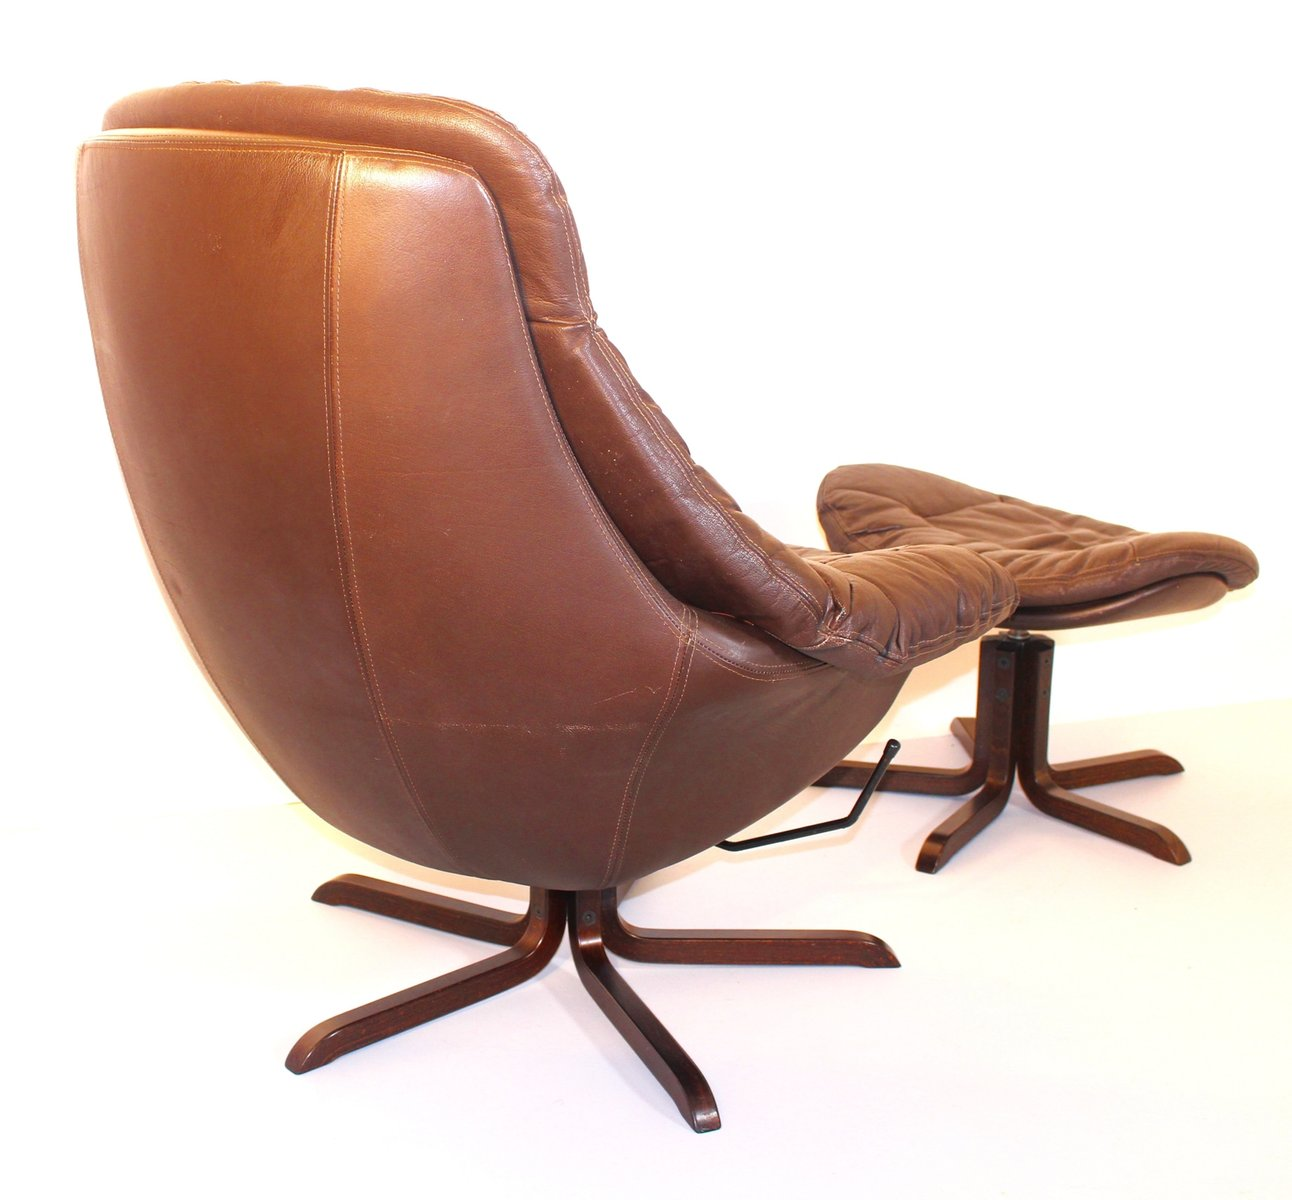 Leather Lounge Chair with Ottoman by H W Klein 1970s for sale at Pamono